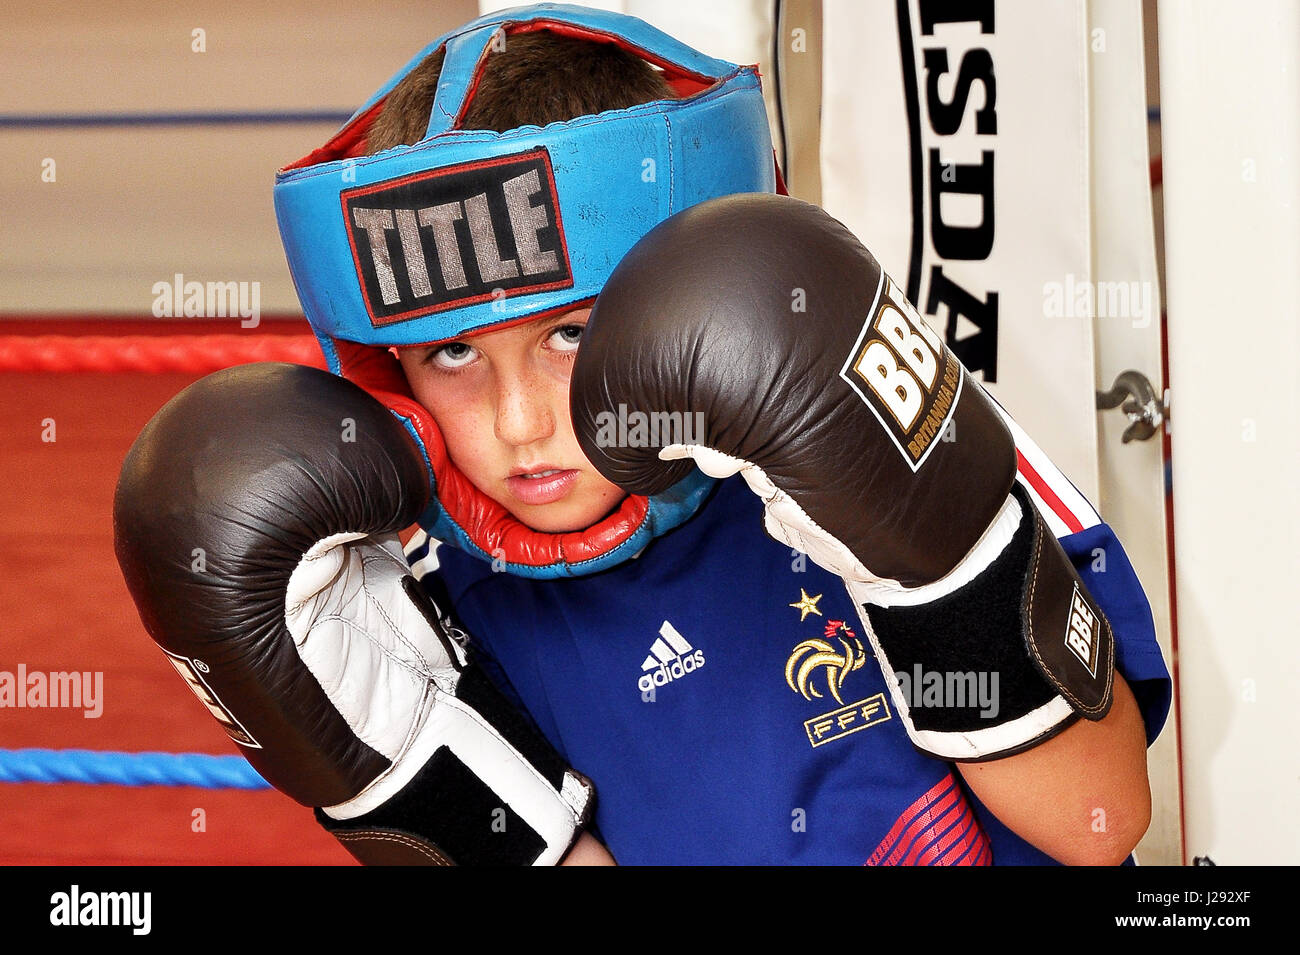 Young amateur boxer before going into the ring to spar. Taken at a gym in the North-east of England - Stock Image